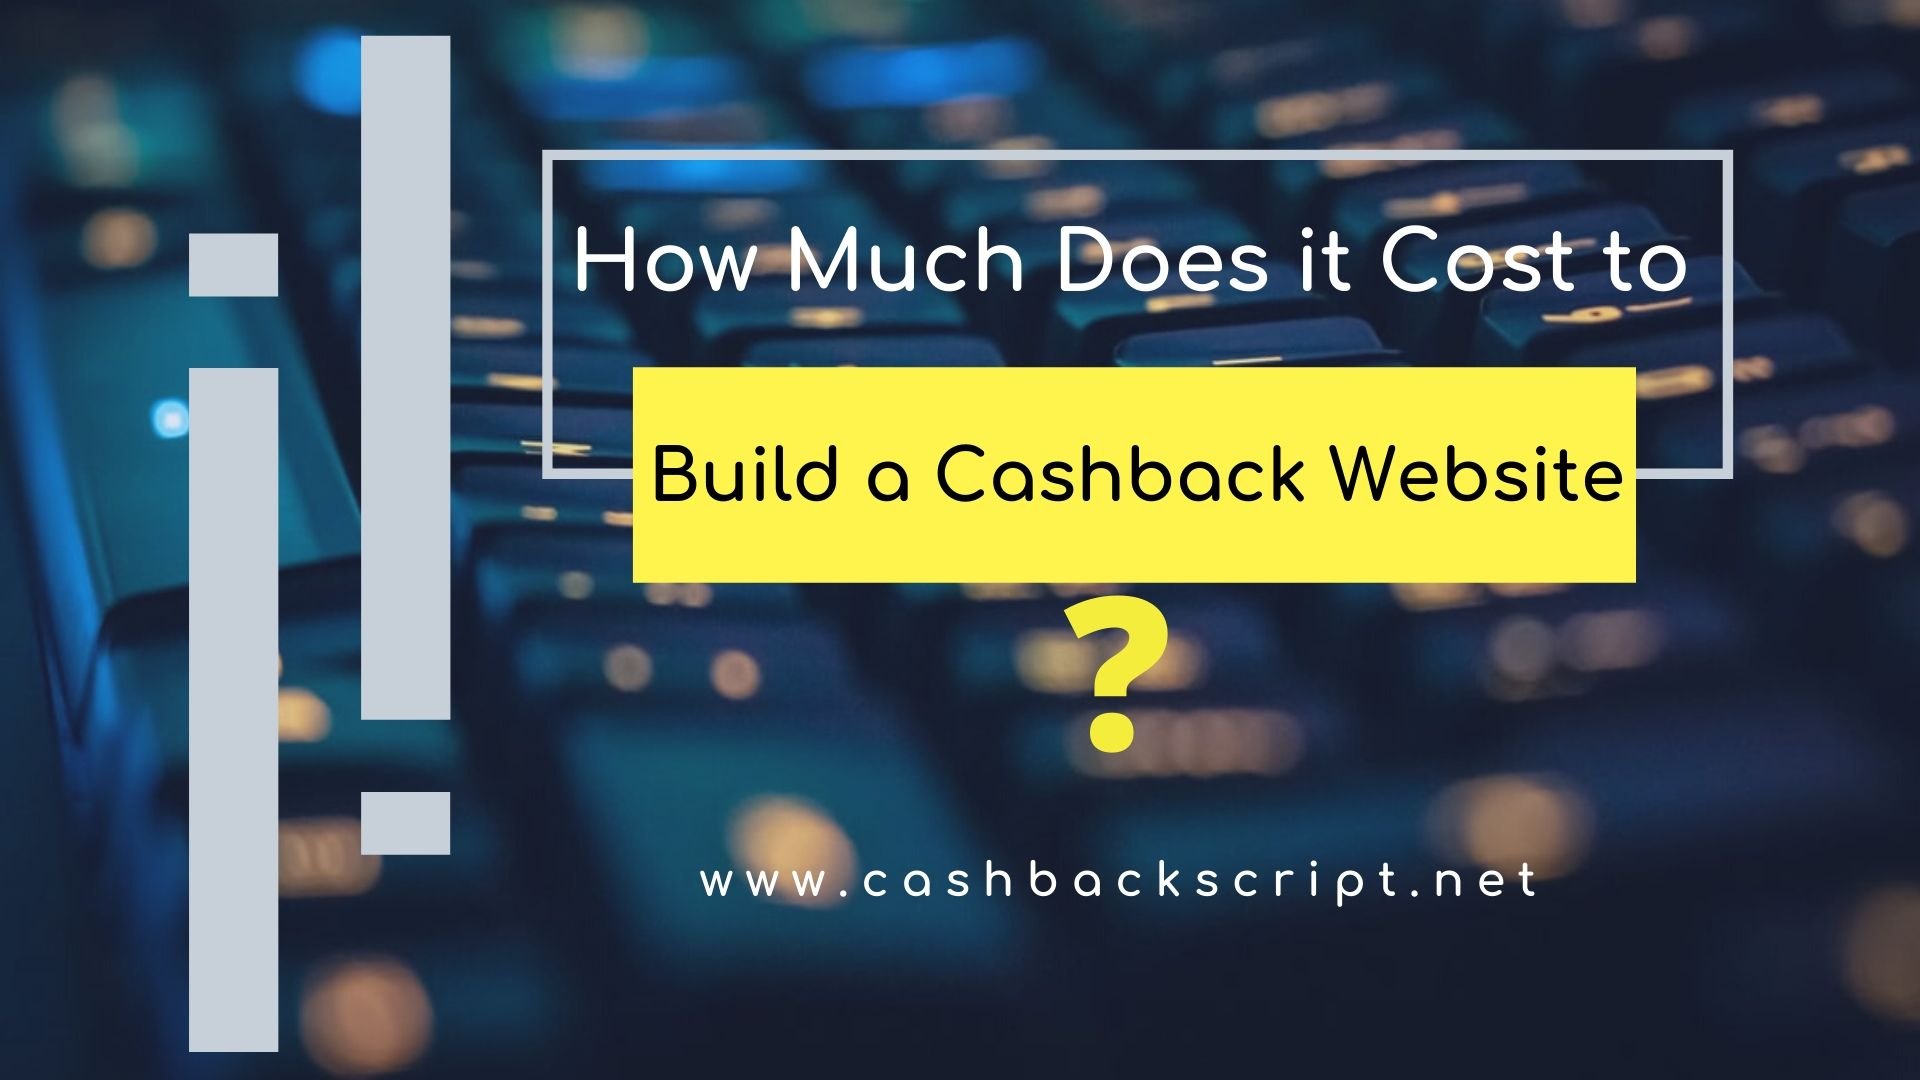 How Much Does it Cost to Build a Cashback Website?